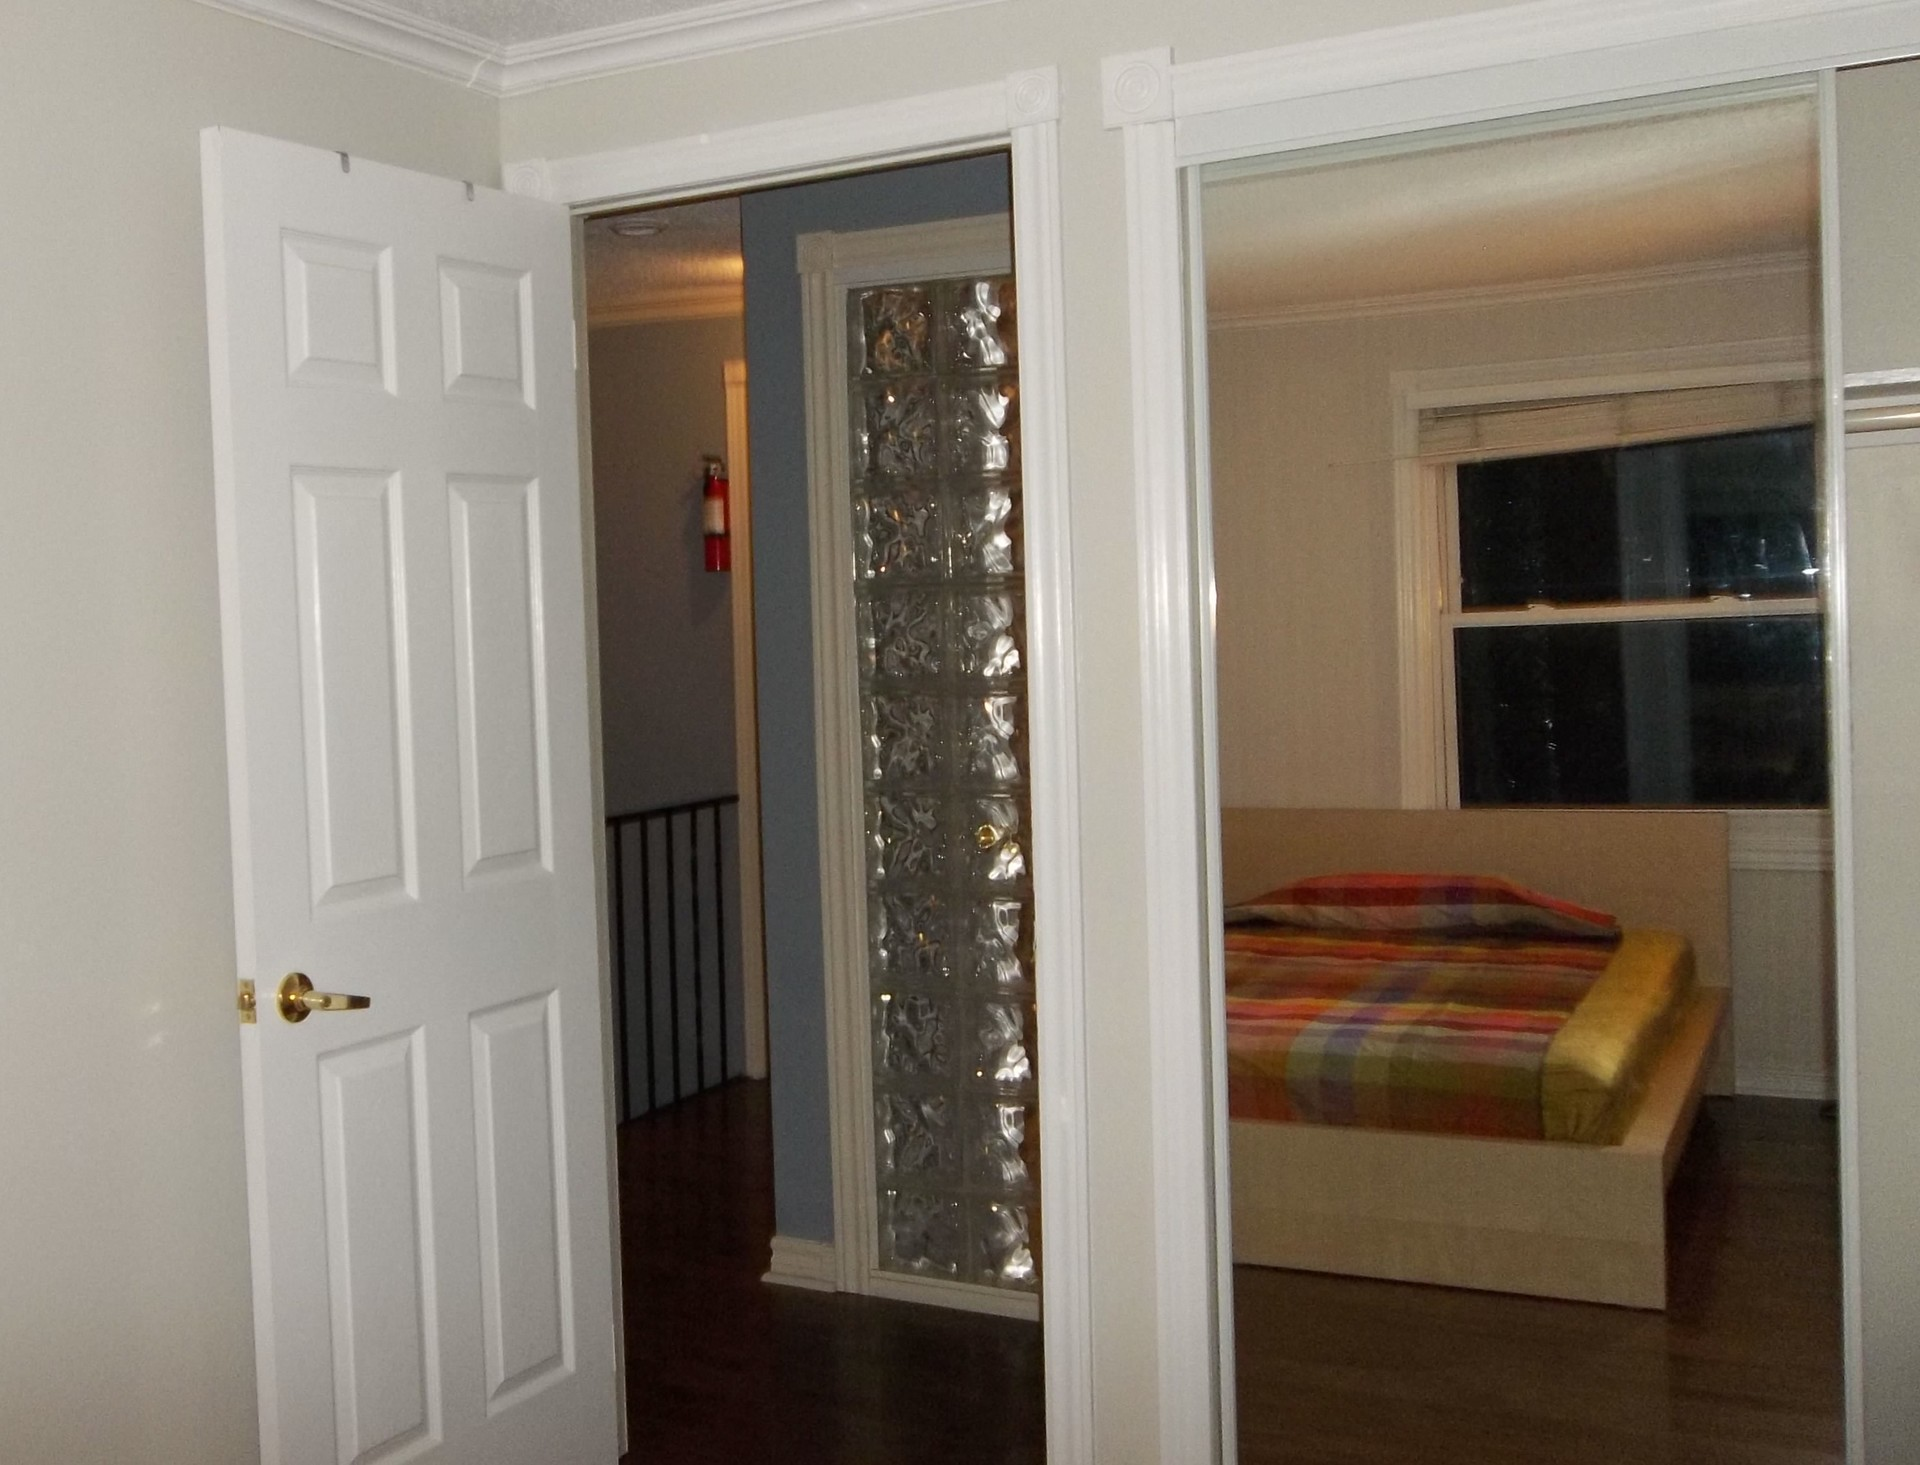 very clean room for rent near carleton u. - ottawa | university